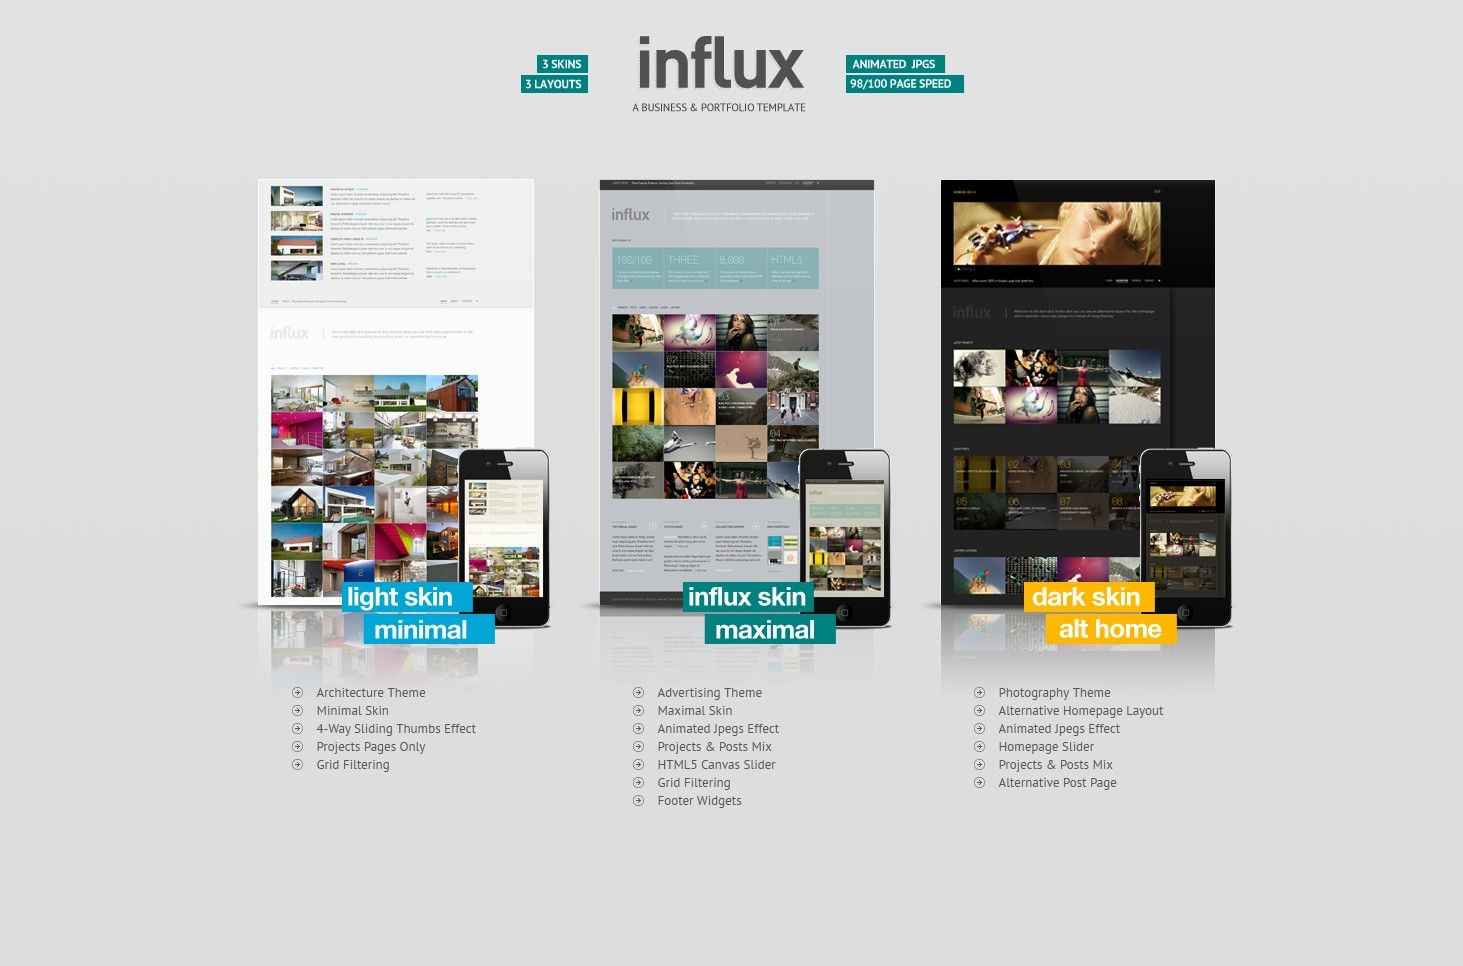 Influx ajax html5 business portfolio template by pixelentity business portfolio template creative site templates 01previewg 02influxskinselectionpageg pronofoot35fo Images